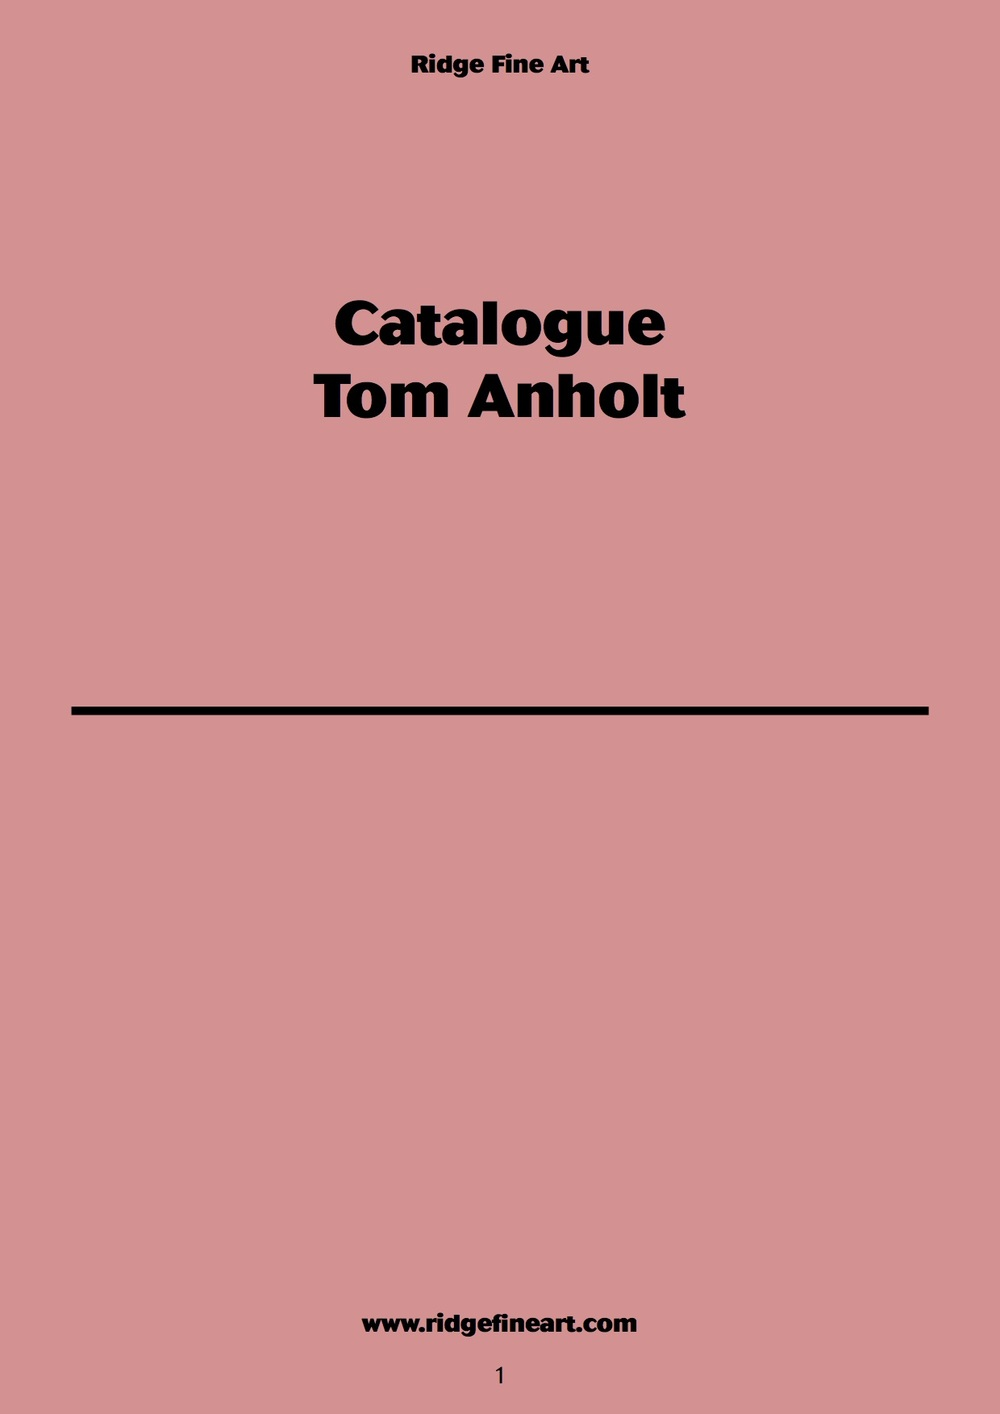 Catalogue Tom Anholt | Ridge Fine Art